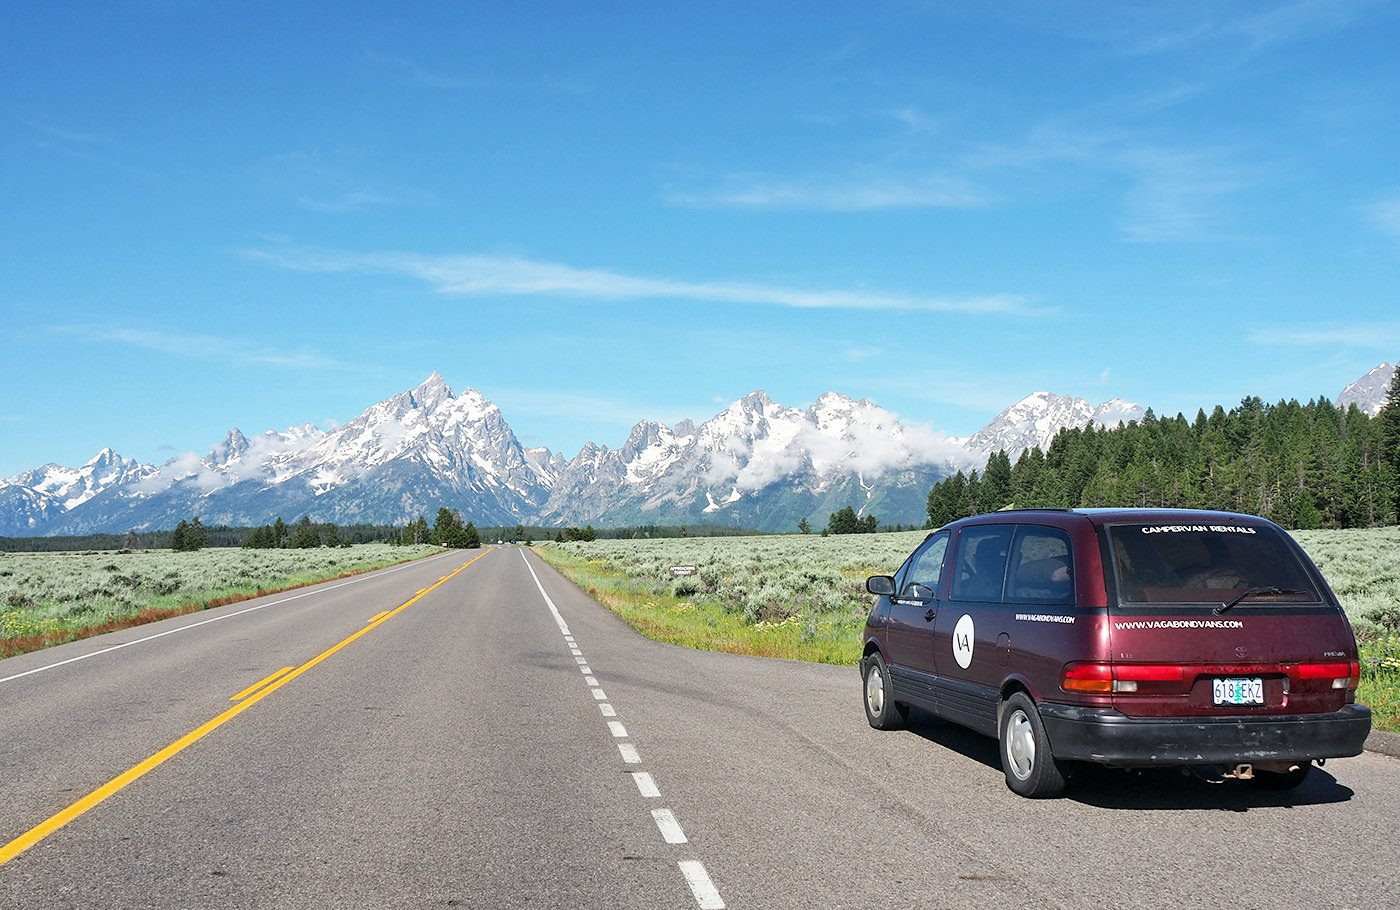 Im Campervan durch den Nordwesten der USA - Roadtrip Route ...